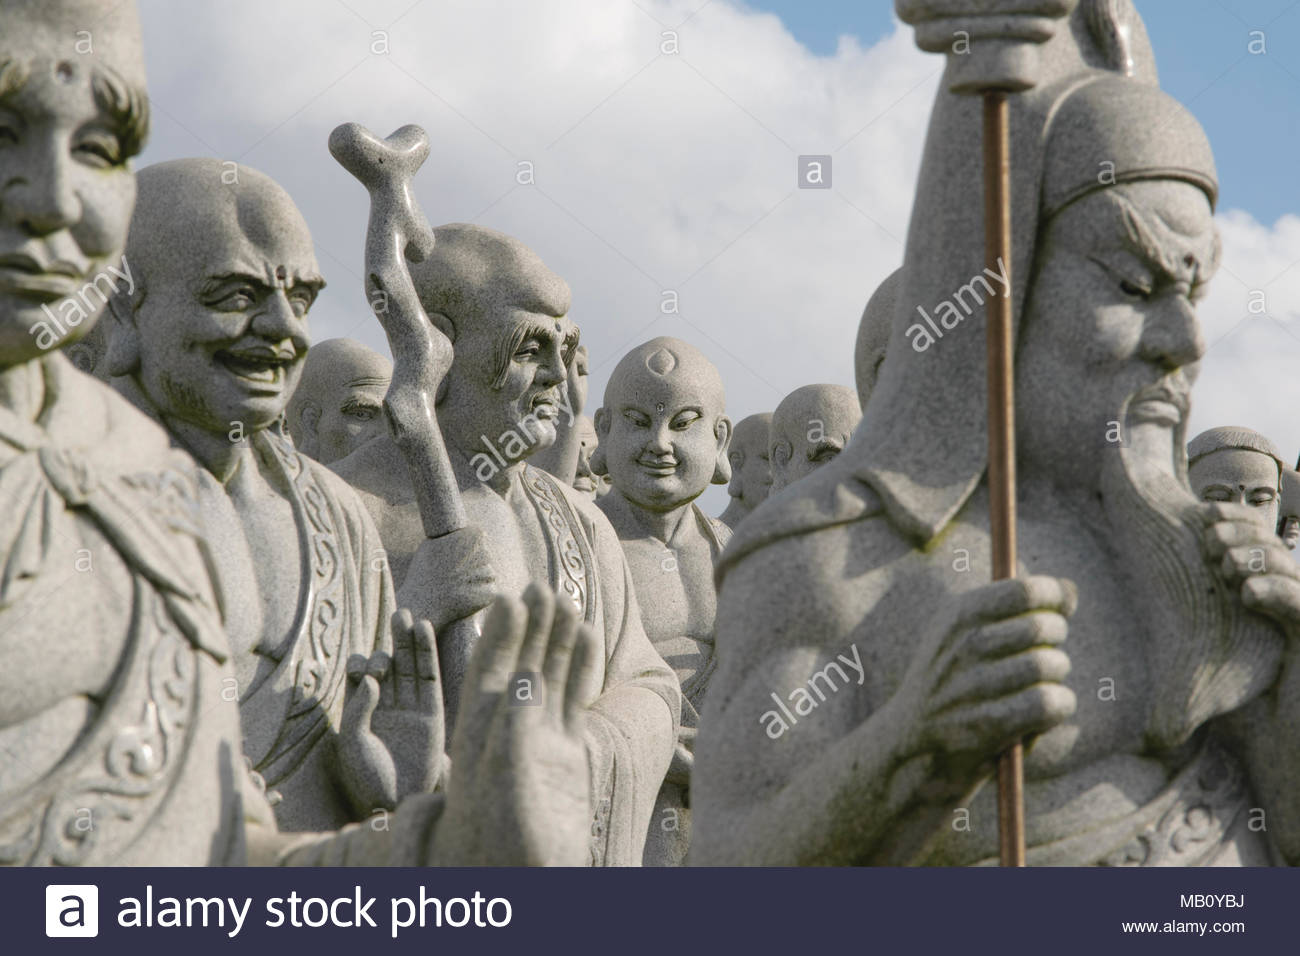 Ksitigarbha Stock Photos Images Alamy Tourism Statue Sculpture Thousand Buddhas